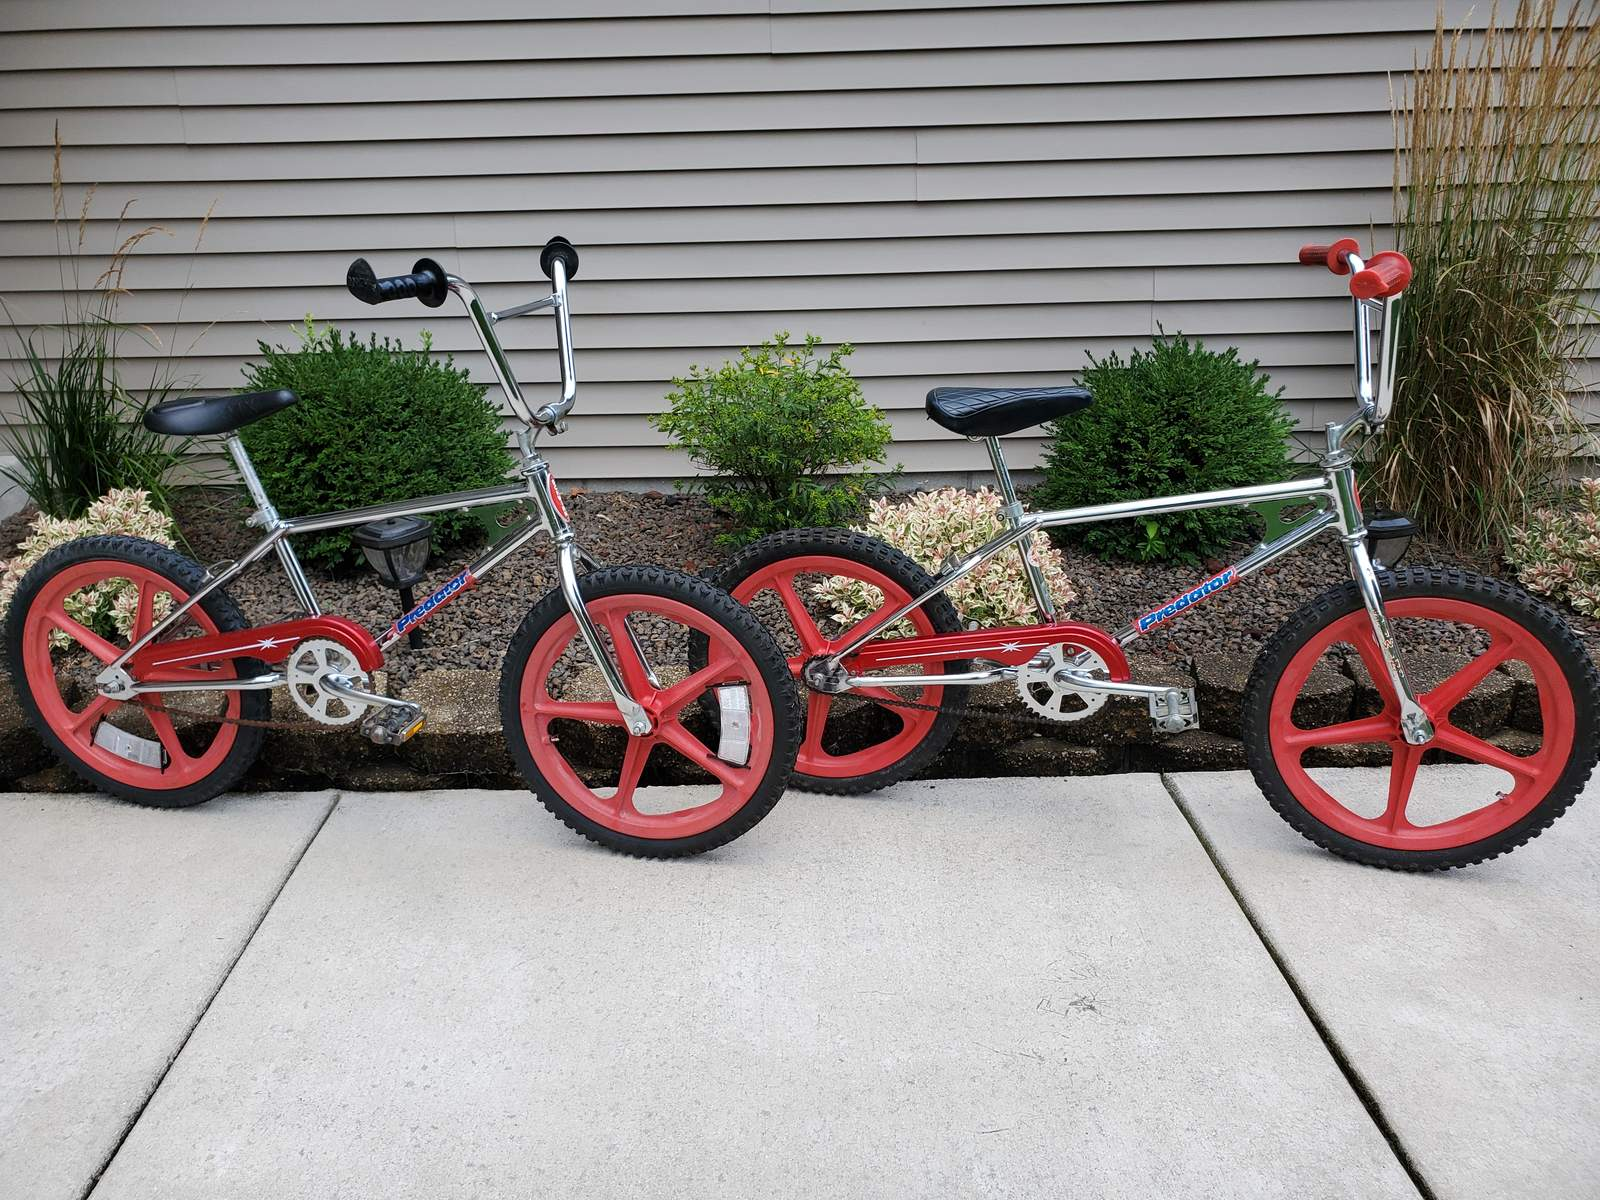 http://uploads.bmxmuseum.com/user-images/91975/20190911_1825335d798951cb.jpg